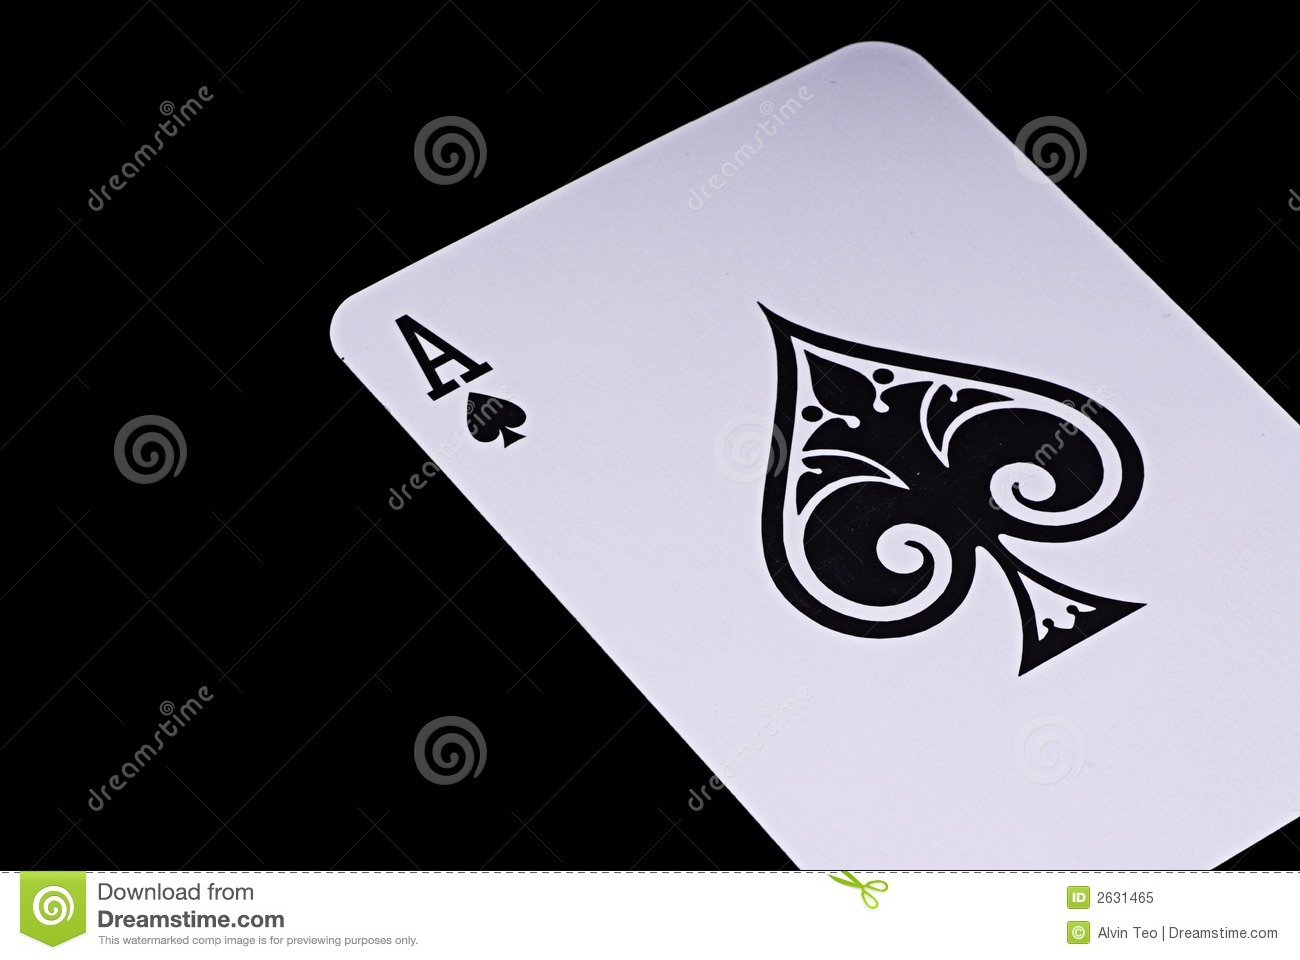 Poker Card Royalty Free Stock Photo Image 2631465 : poker card 2631465 from www.dreamstime.com size 1300 x 960 jpeg 155kB